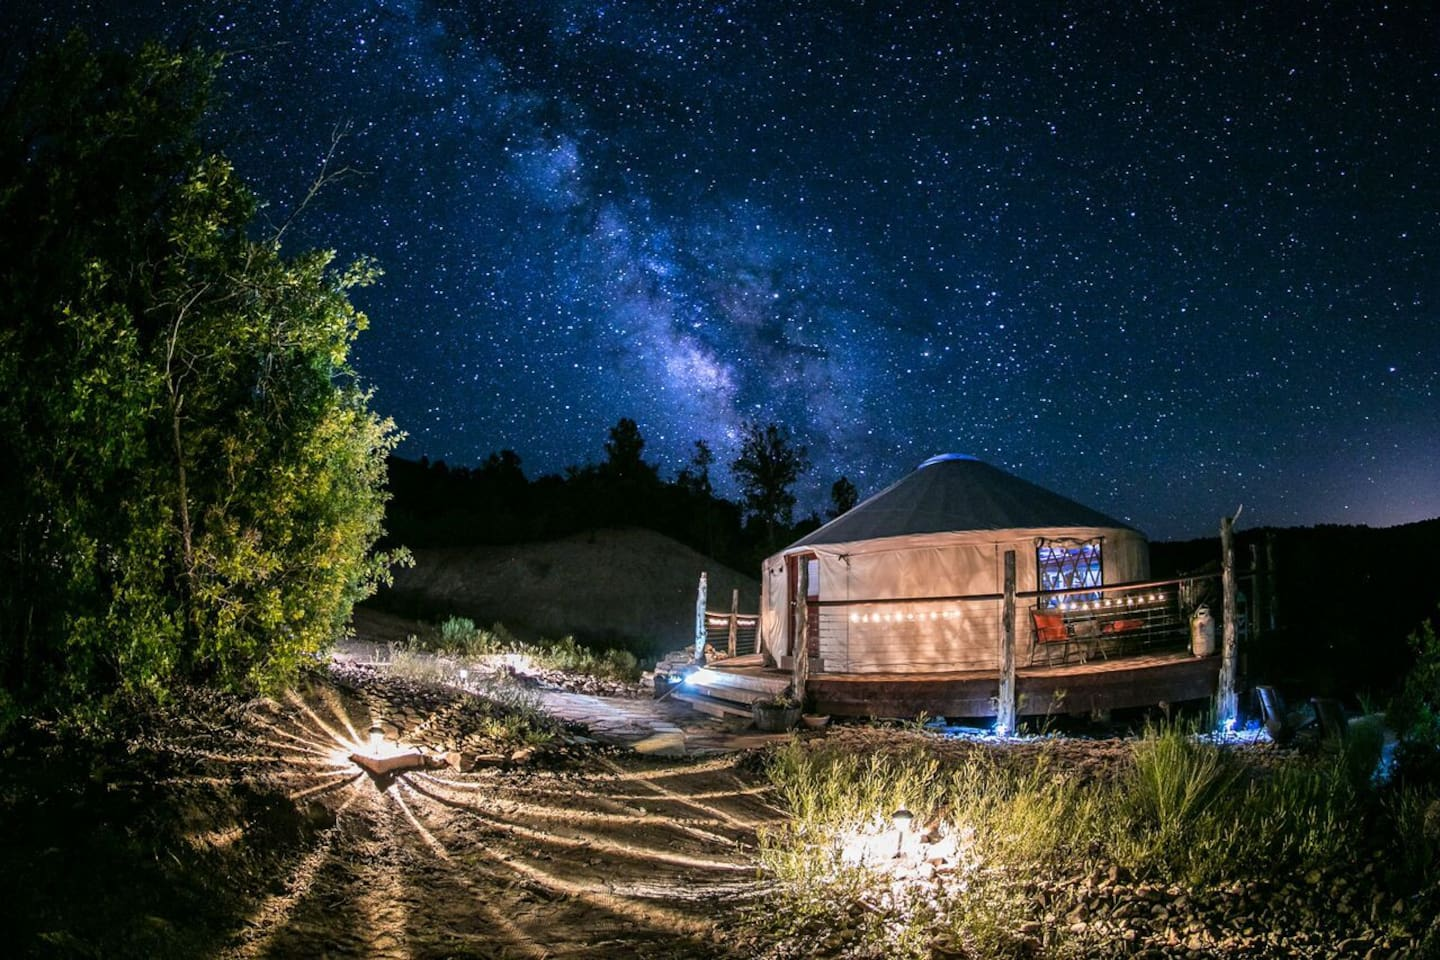 Nighttime magic with the Milky Way.